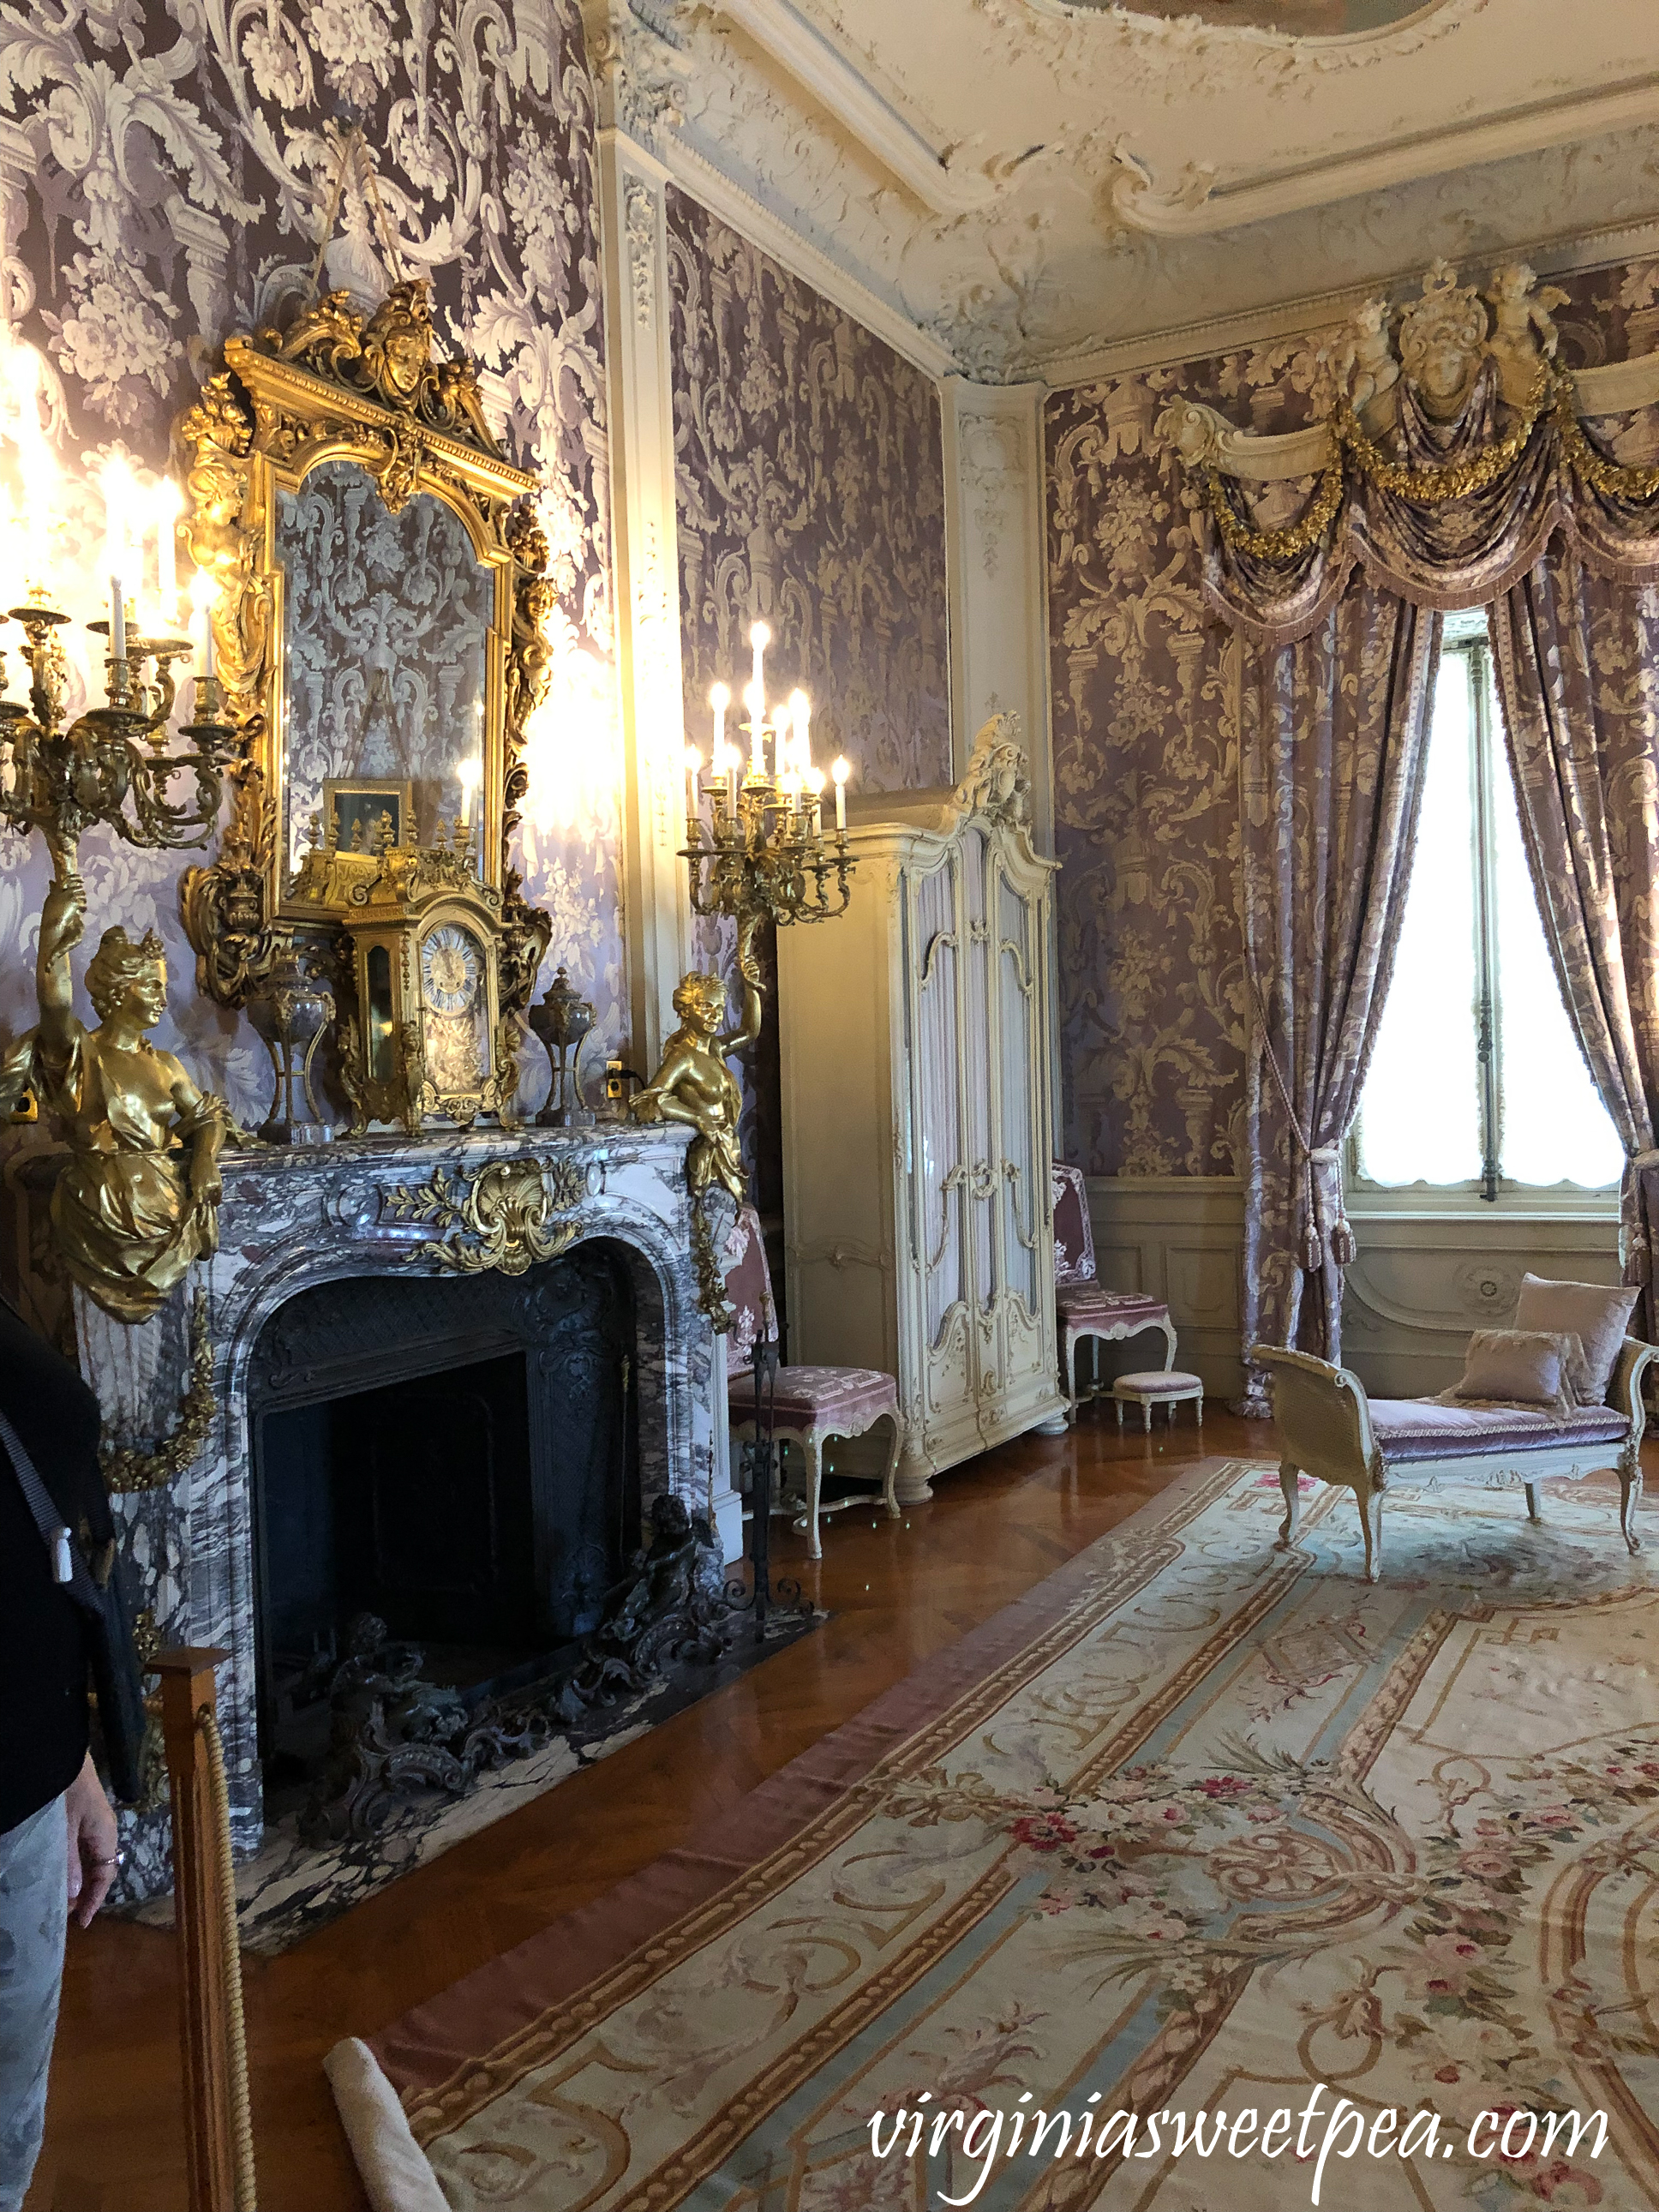 Alva Vanderbilt's bedroom at Marble House